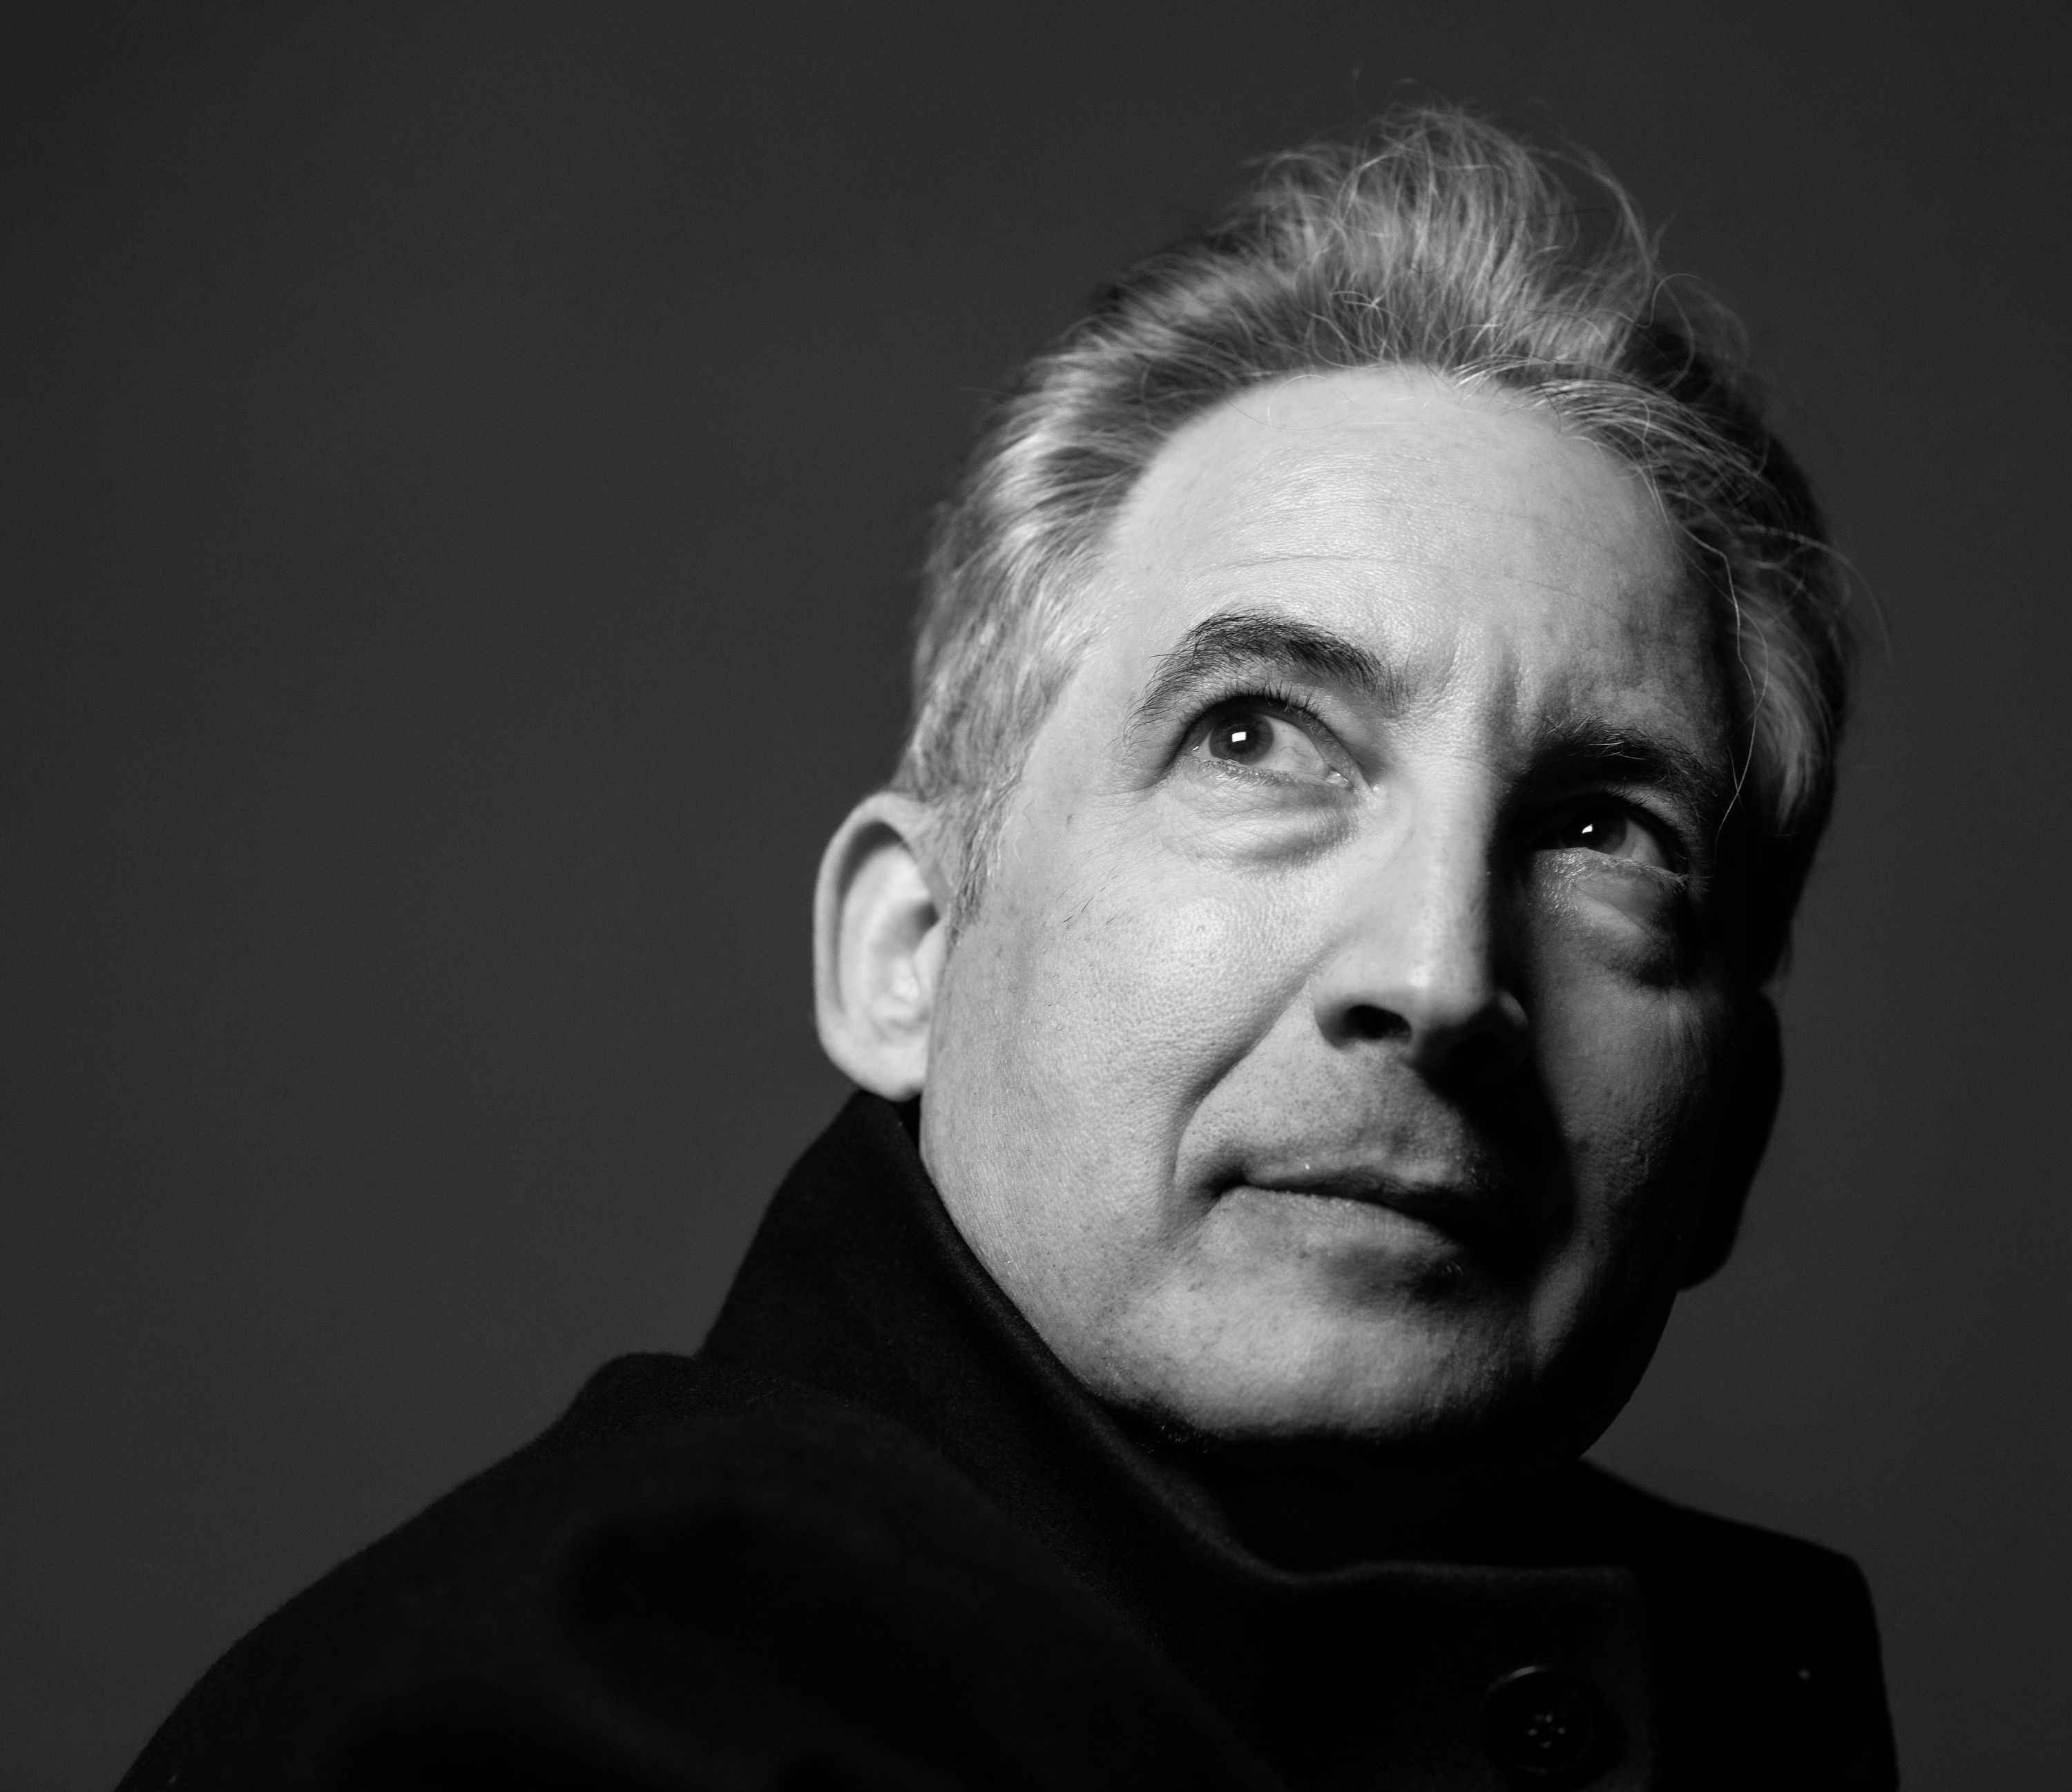 Brian Greene at Pioneer Works shot by Michael Avedon